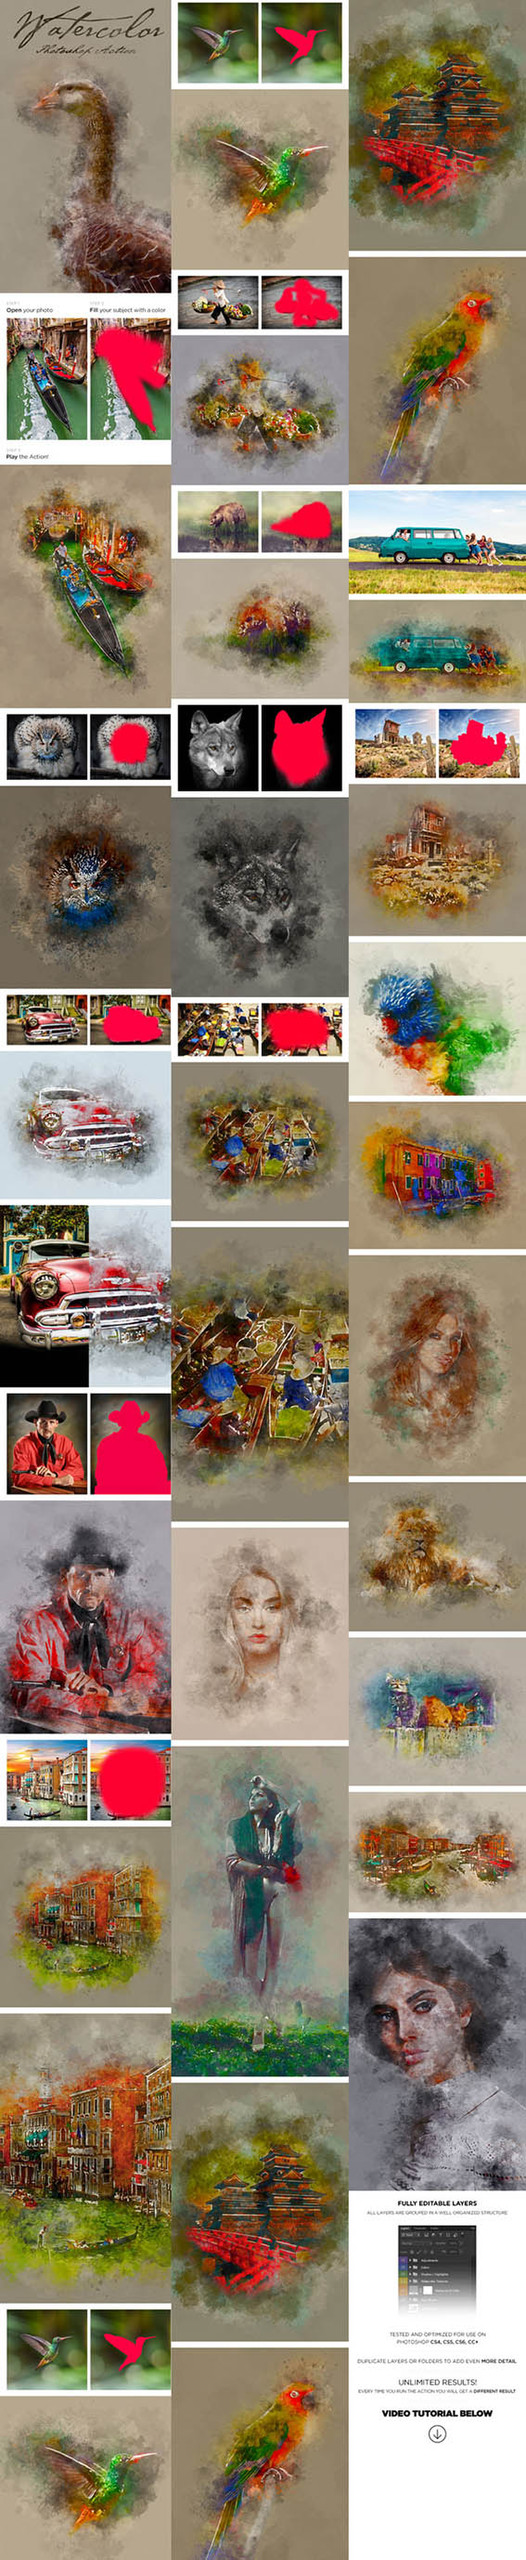 Watercolor Effects Photoshop Action 17456862